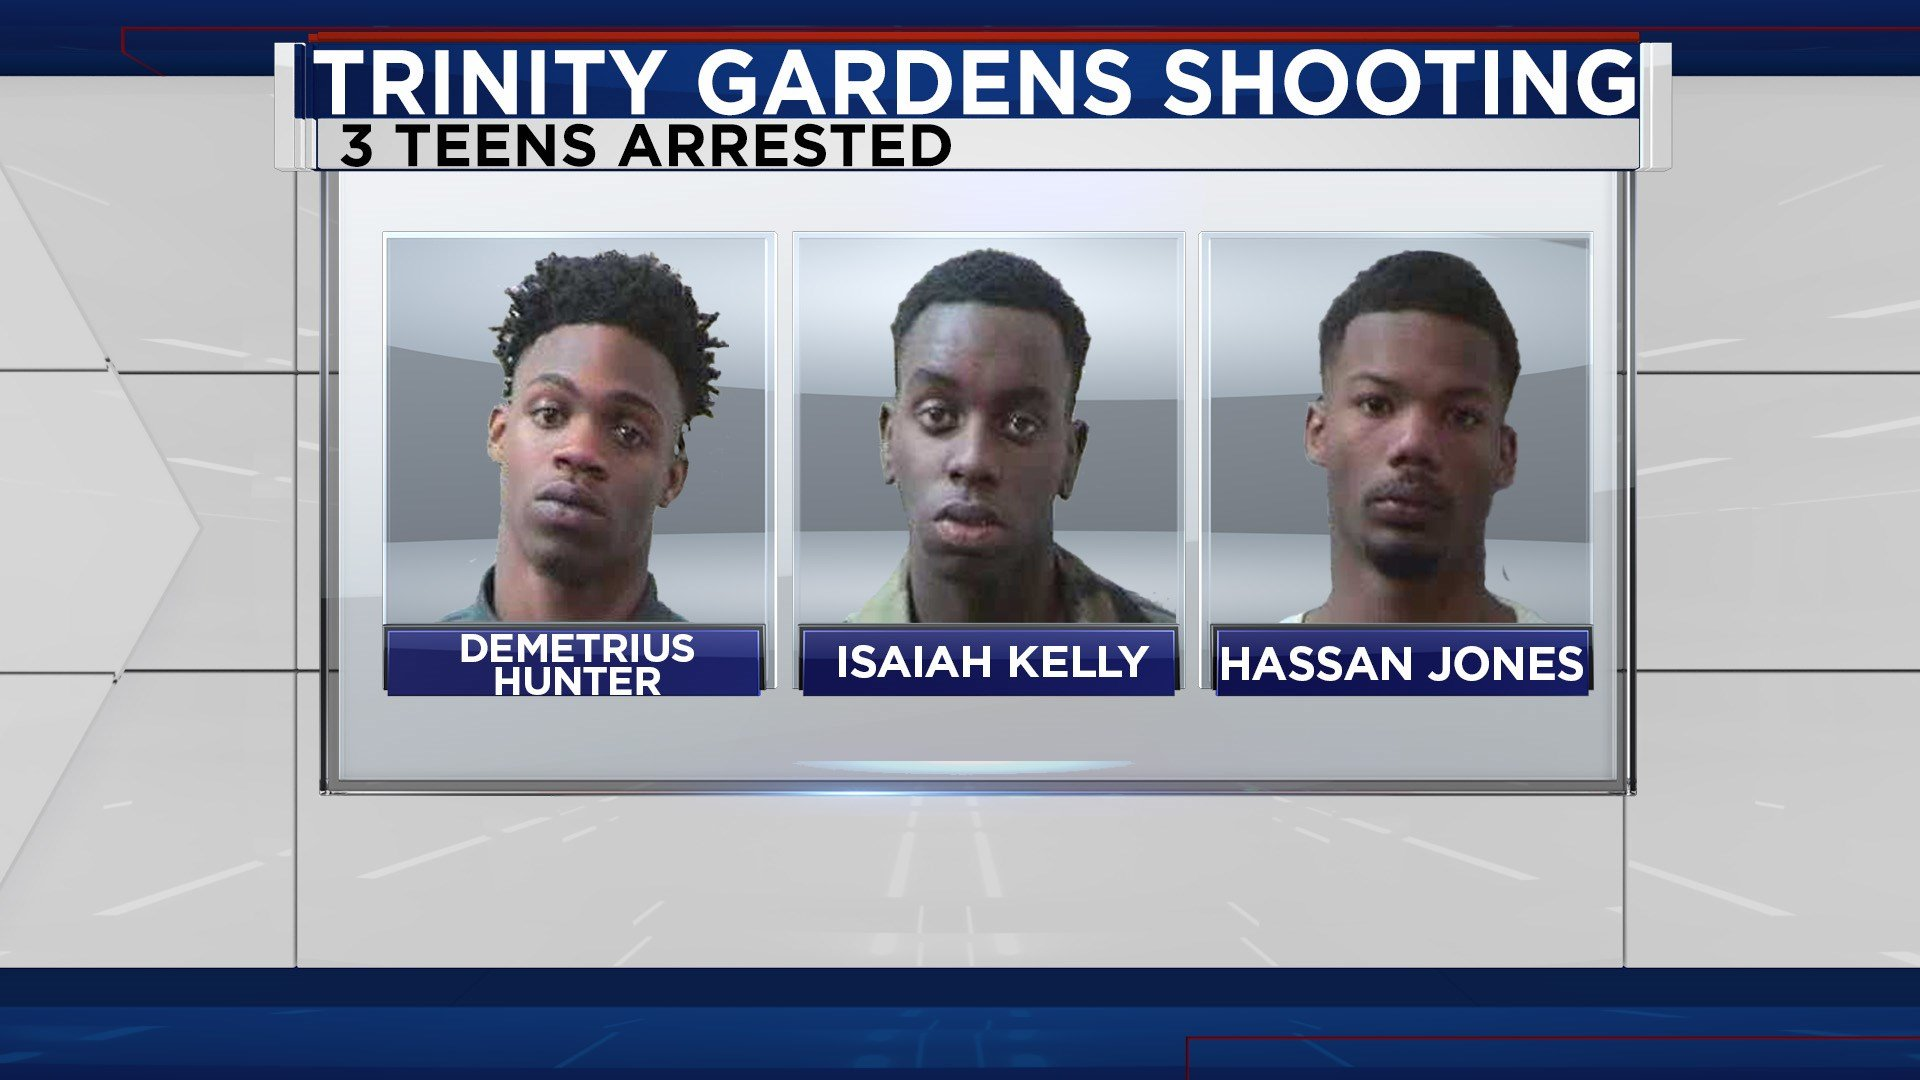 Judge Basenberg denied the Mobile County District Attorney's request to hold the Trinity Garden shooters without bond. He granted bonds but added the condition that 10% of the bond be in cash about $12,000. Photo: FOX10 News.